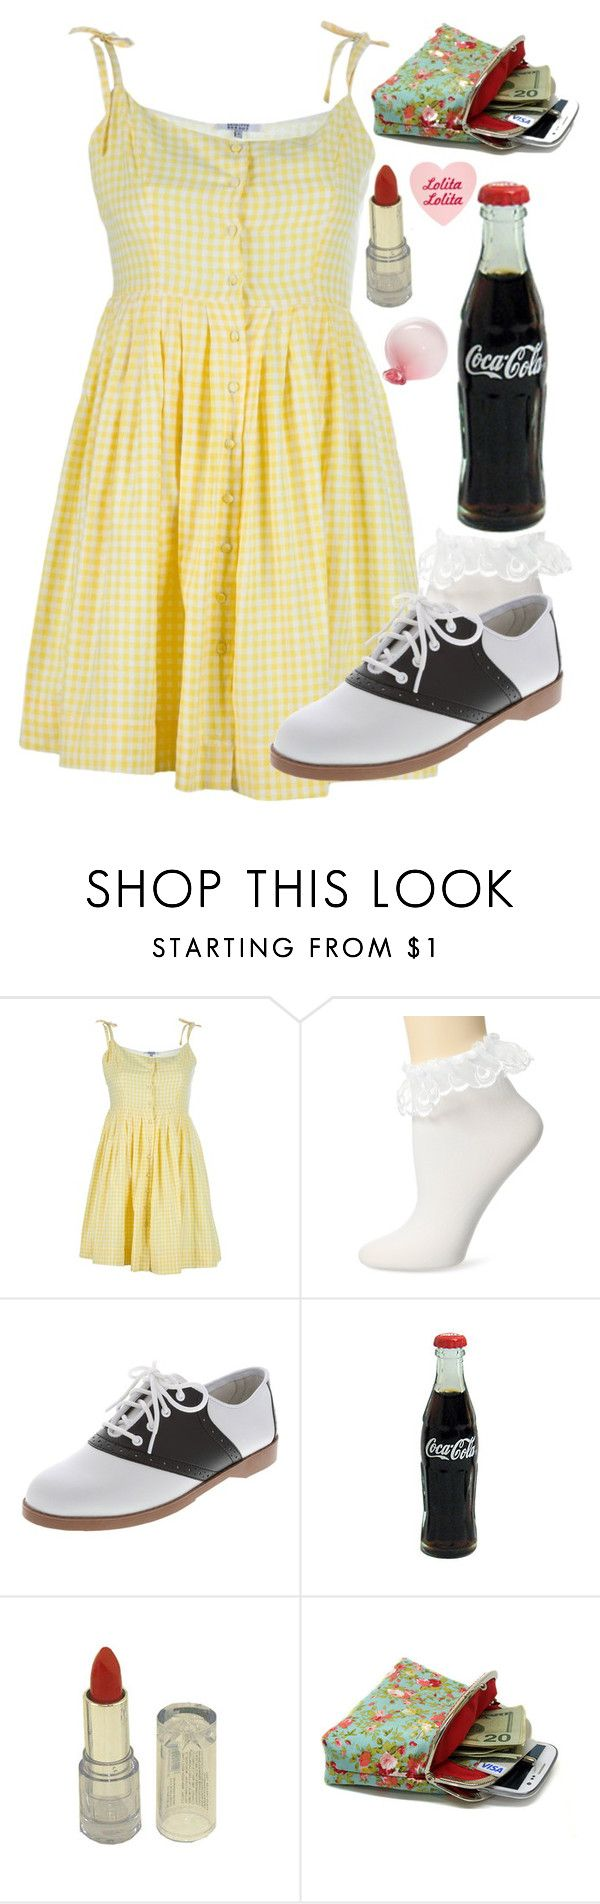 """Hey Lolita Hey"" by doe-eyed-nymphet ❤ liked on Polyvore featuring Brigitte Bardot, Leg Avenue, Esque Studio, nymphet, lolita1997 and nymphetfashion"